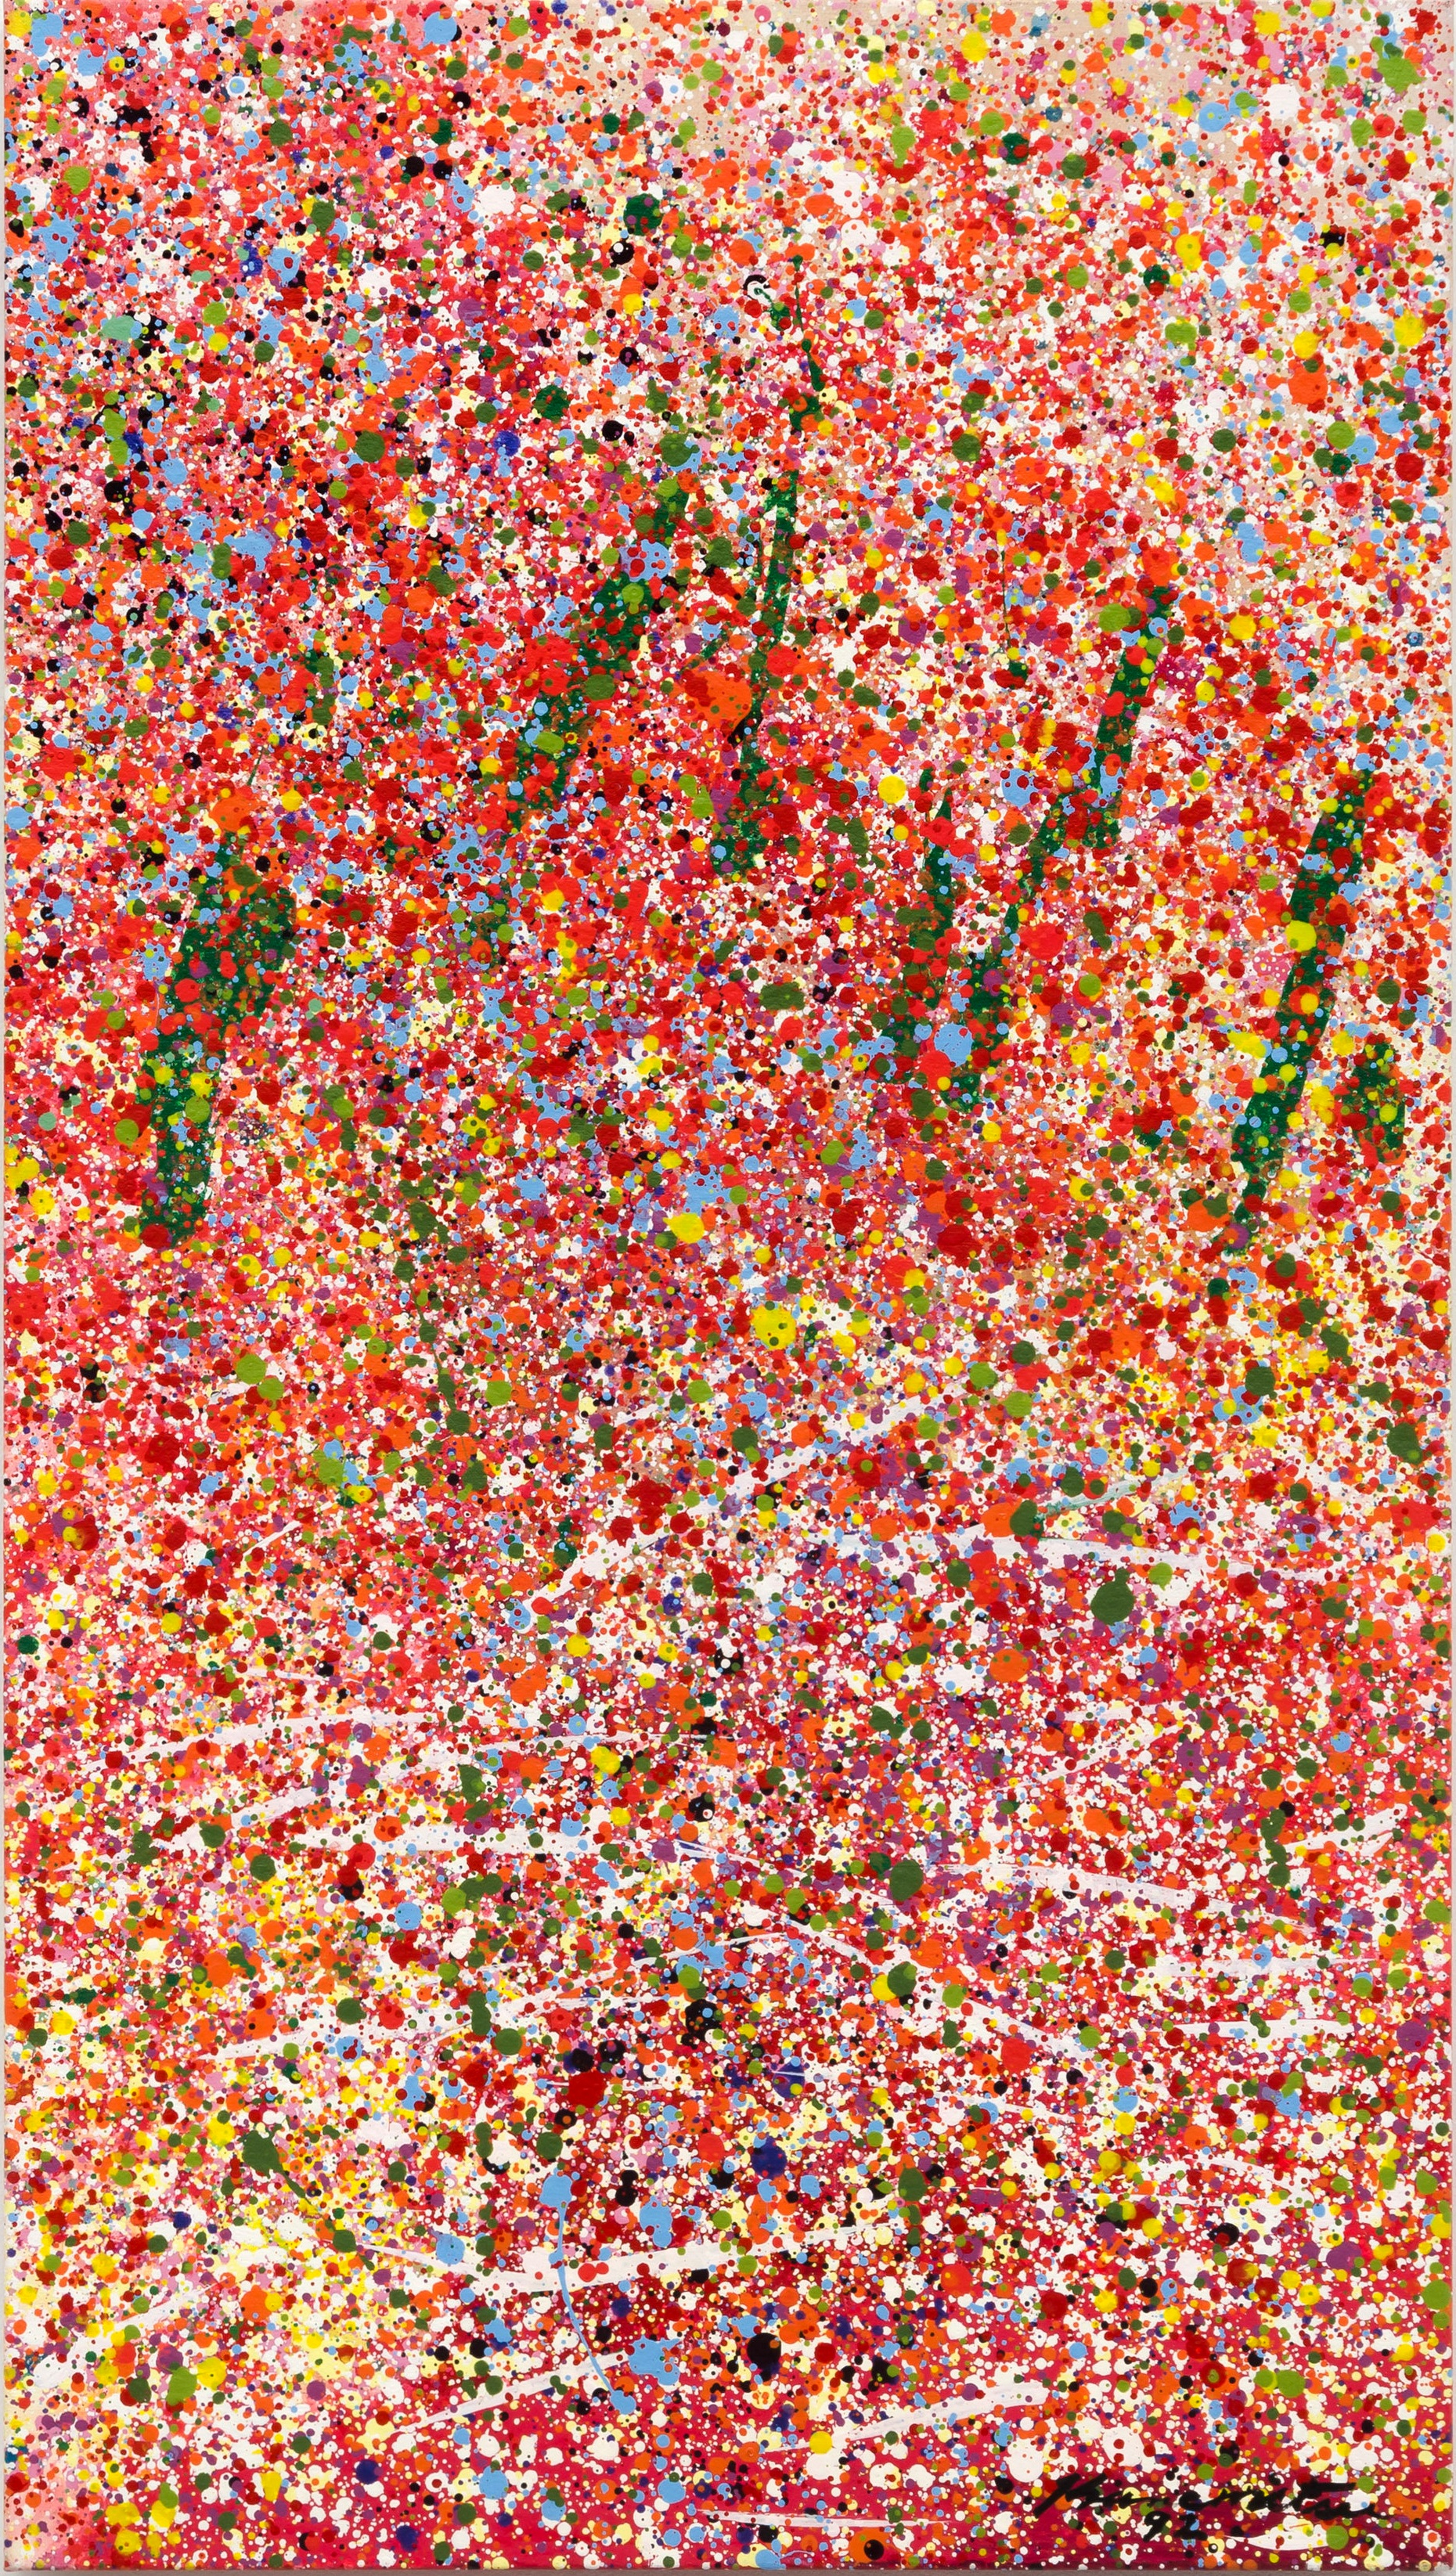 Untitled (J) , 1992 acrylic on canvas 36 x 20 inches; 91.4 x 50.8 centimeters